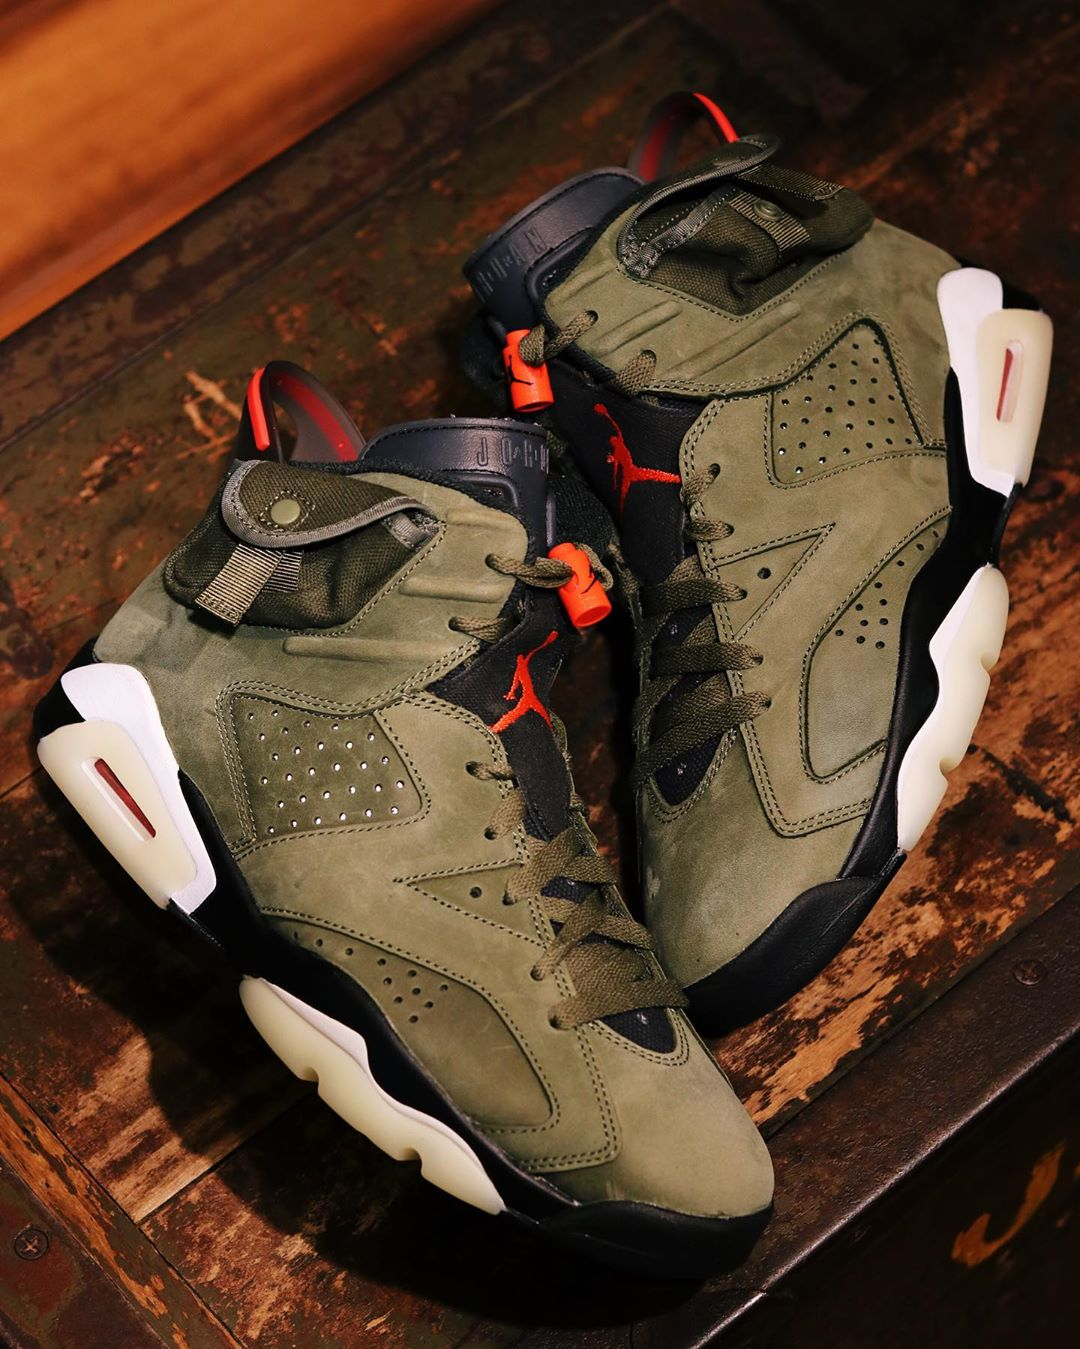 finest selection adef3 41731 Travis Scott Air Jordan 6 to Release on October 12th - HOUSE ...